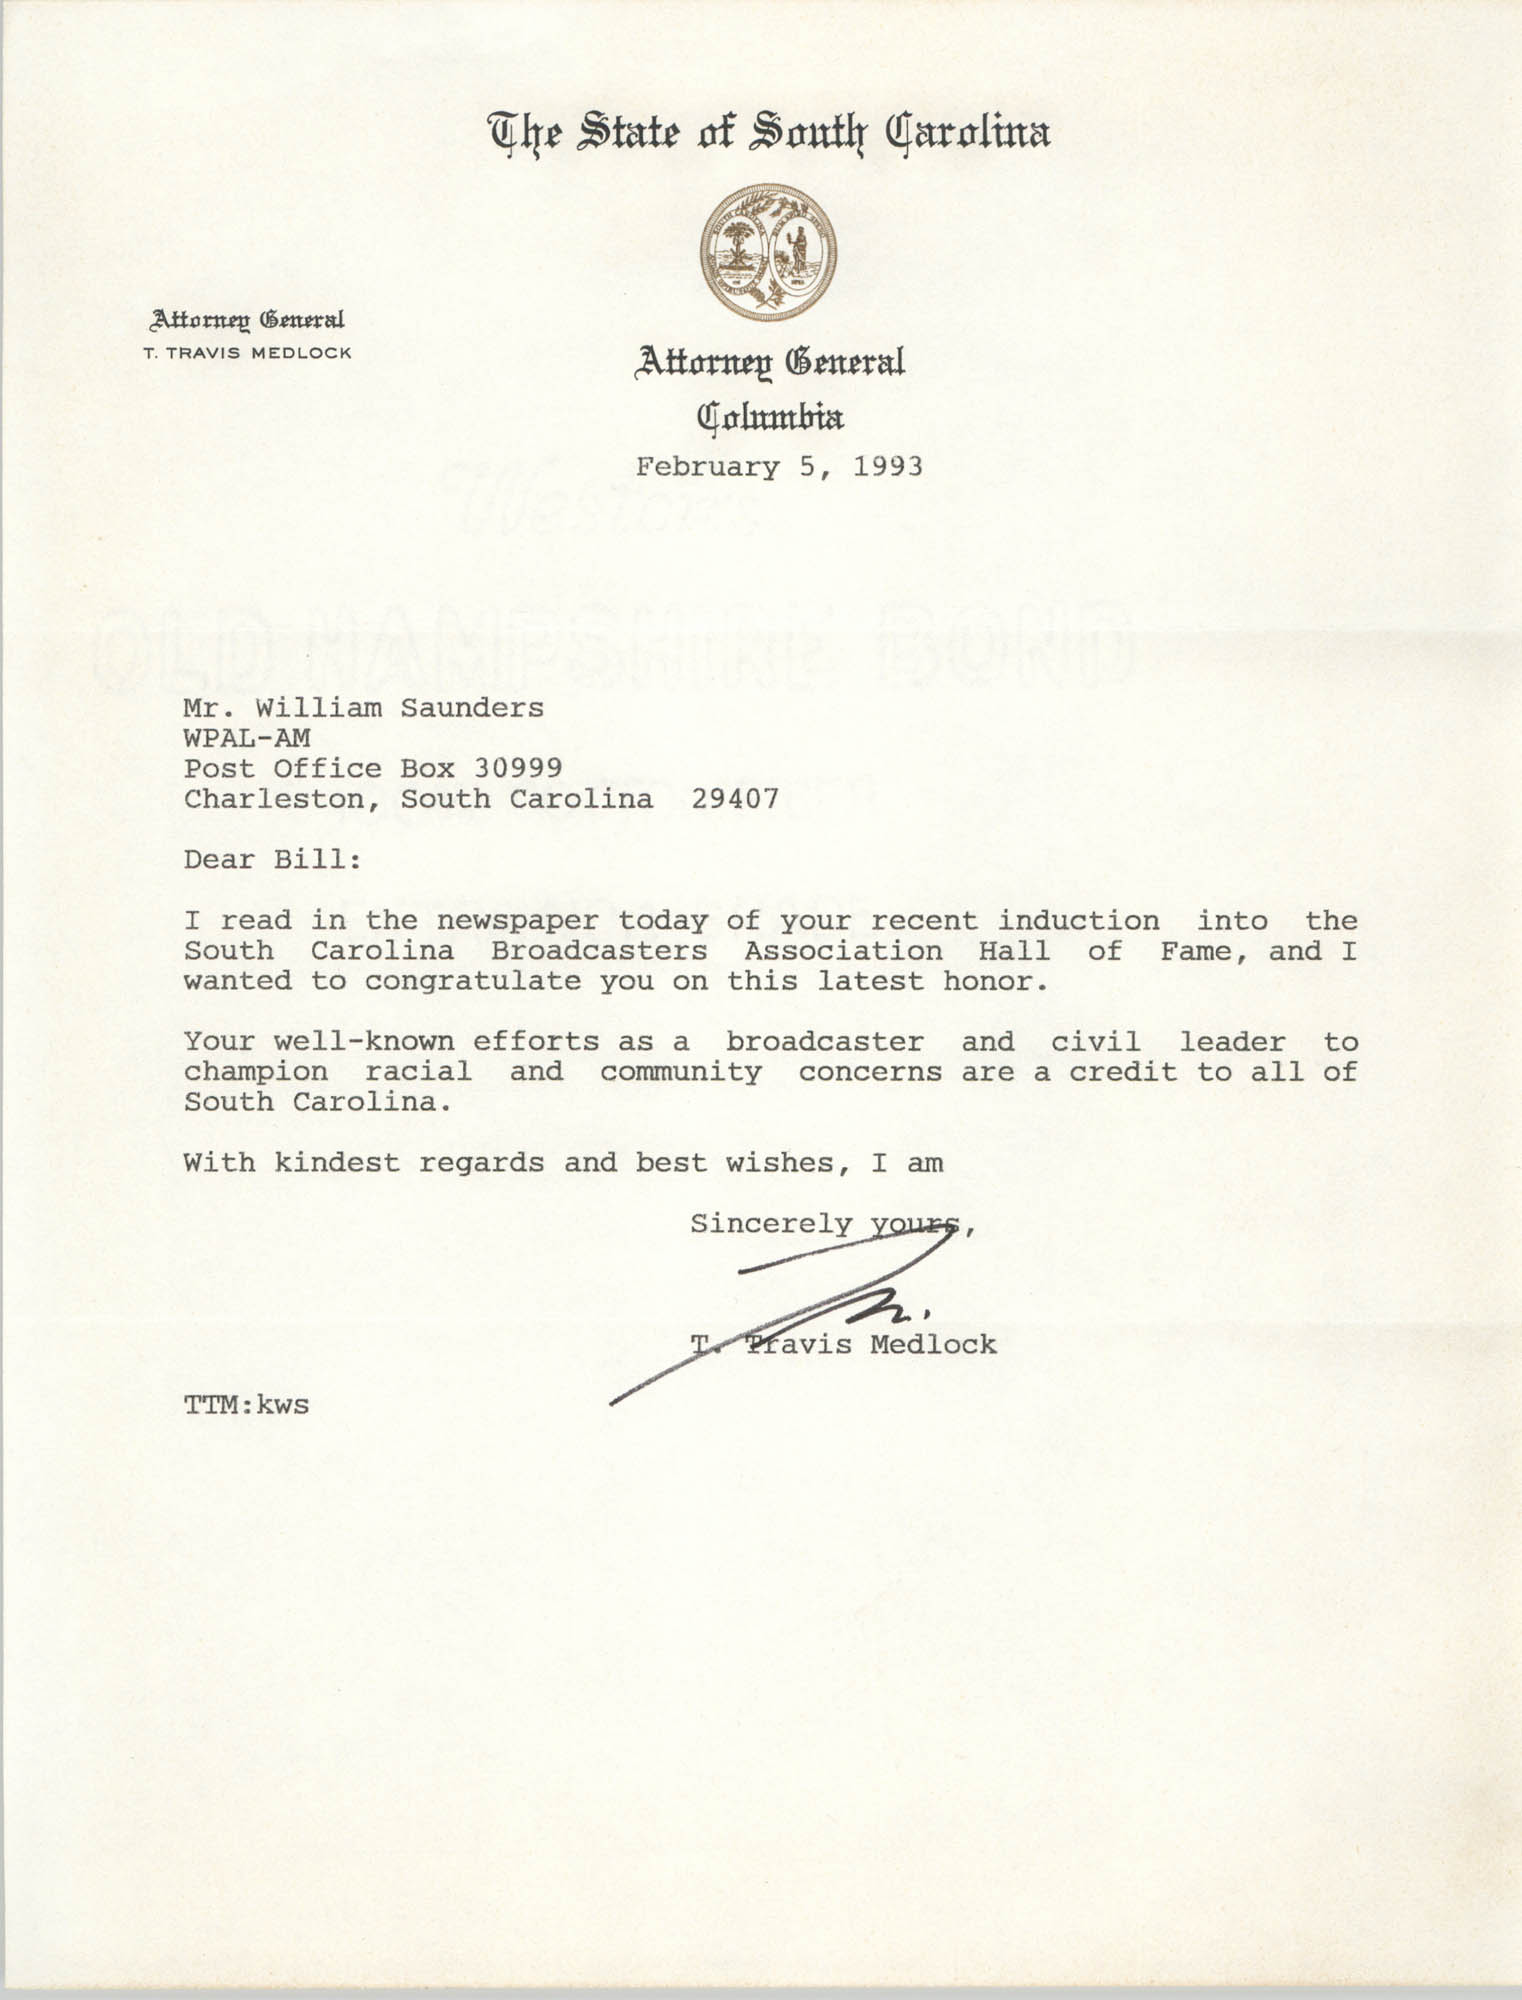 Letter from T. Travis Medlock to William Saunders, February 5, 1993